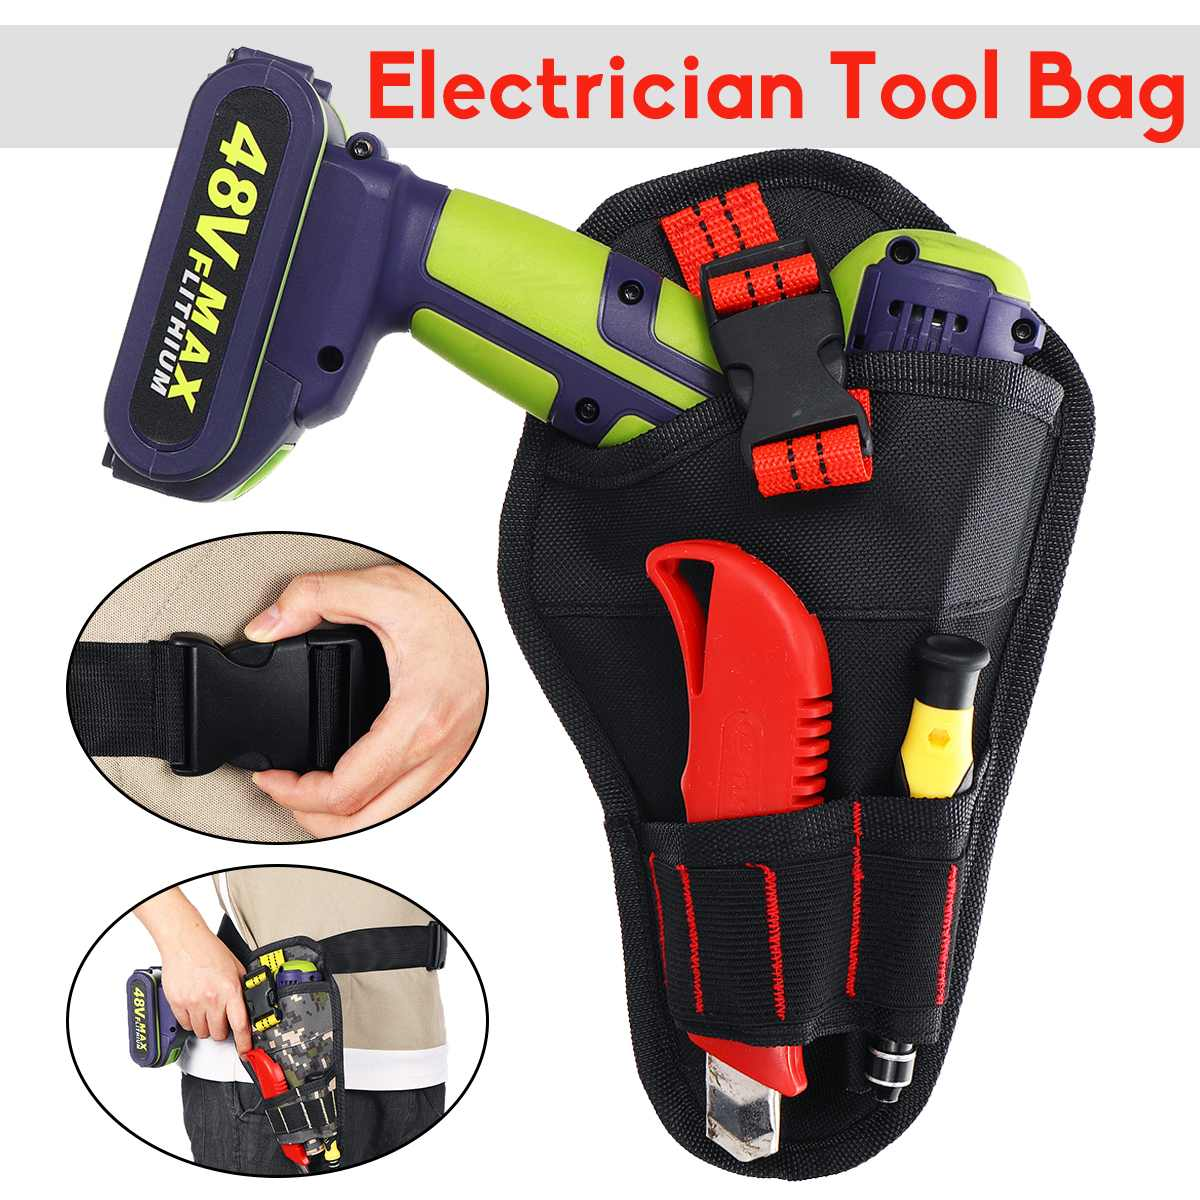 Electrician Tool Bag Multi-functional Wrench Cordless Electric Hand Drill Holder Tool Belt Pouch Oxford Waist Storage Bag